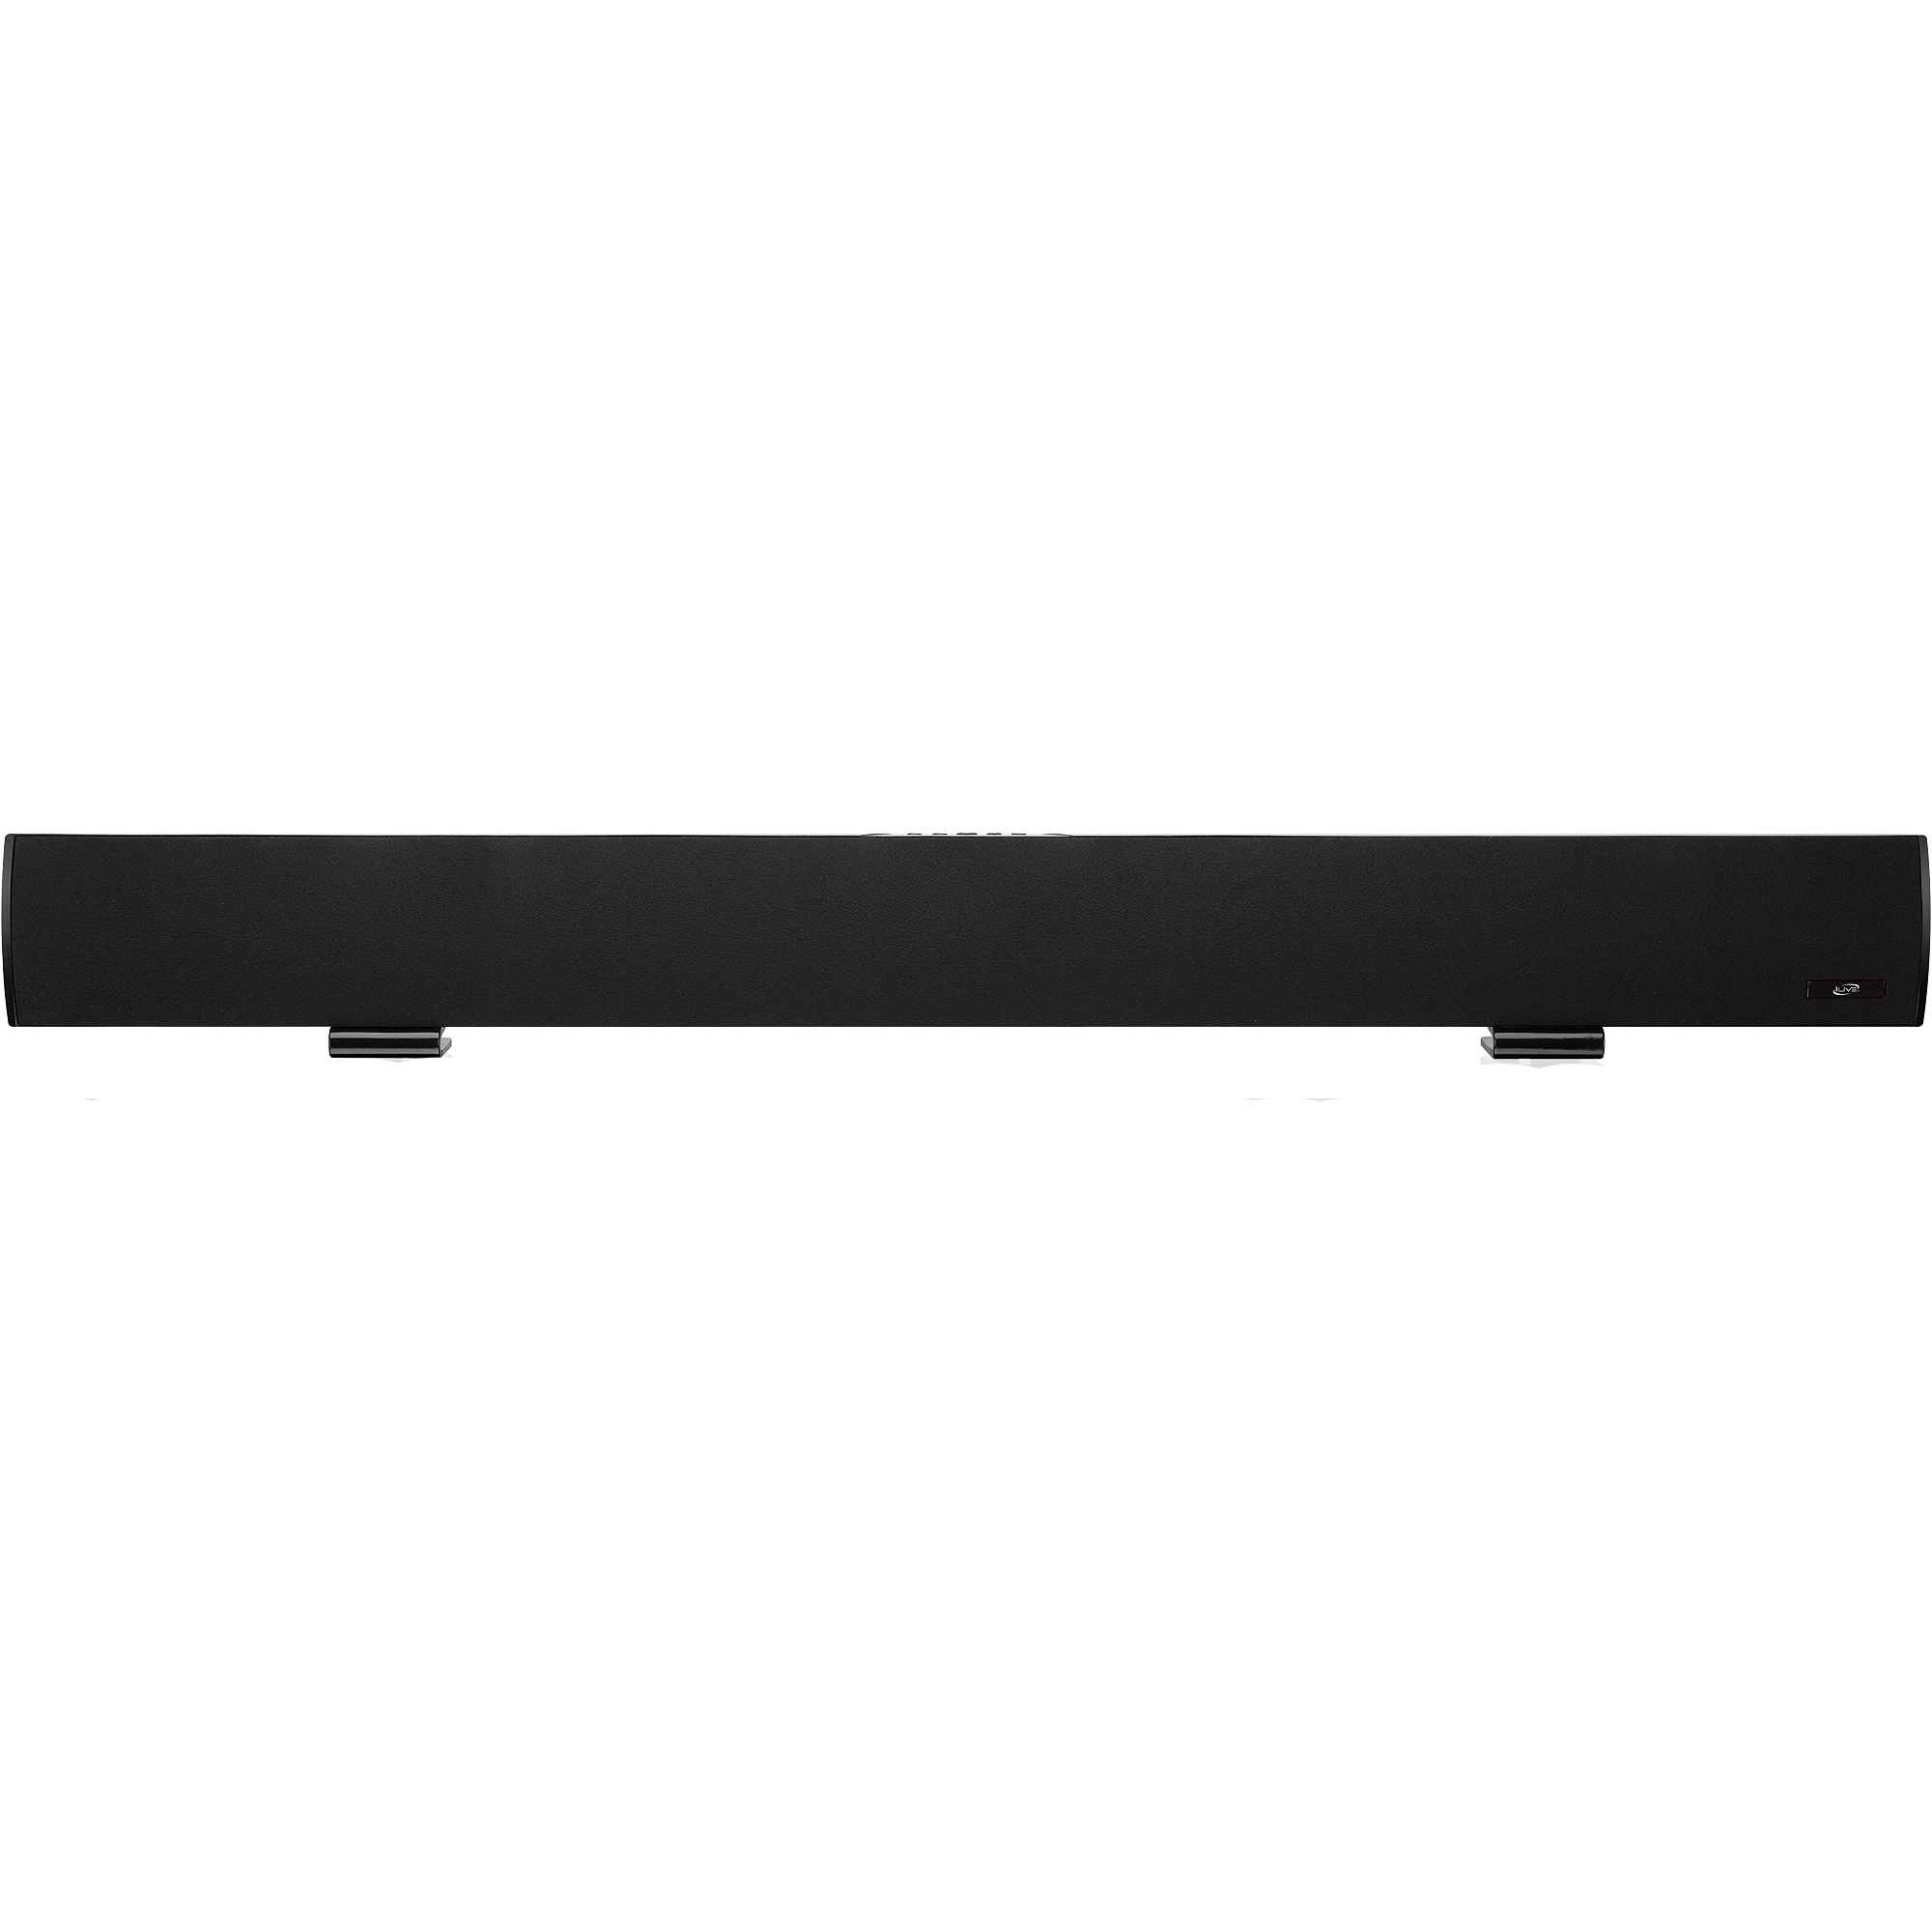 "iLIVE IT123B 37"" 2.1-Channel Sound Bar"